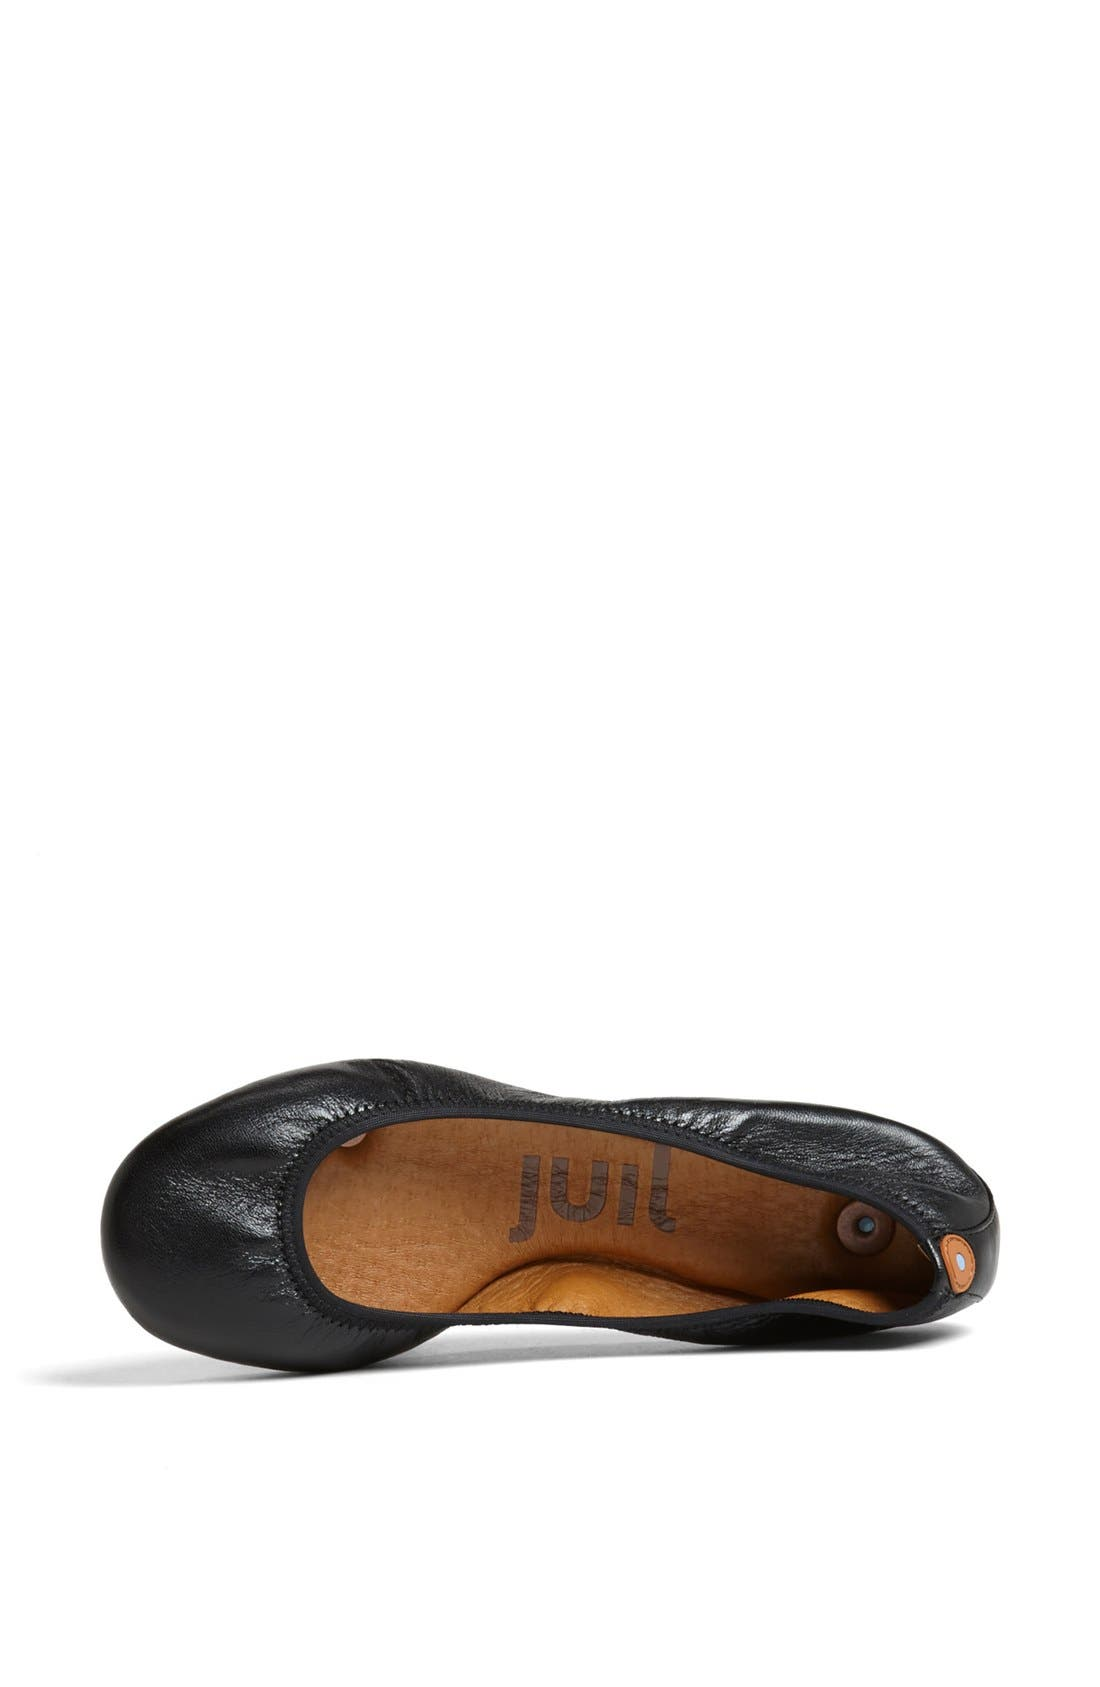 Alternate Image 3  - Juil 'The Flat' Earthing Leather Ballet Flat